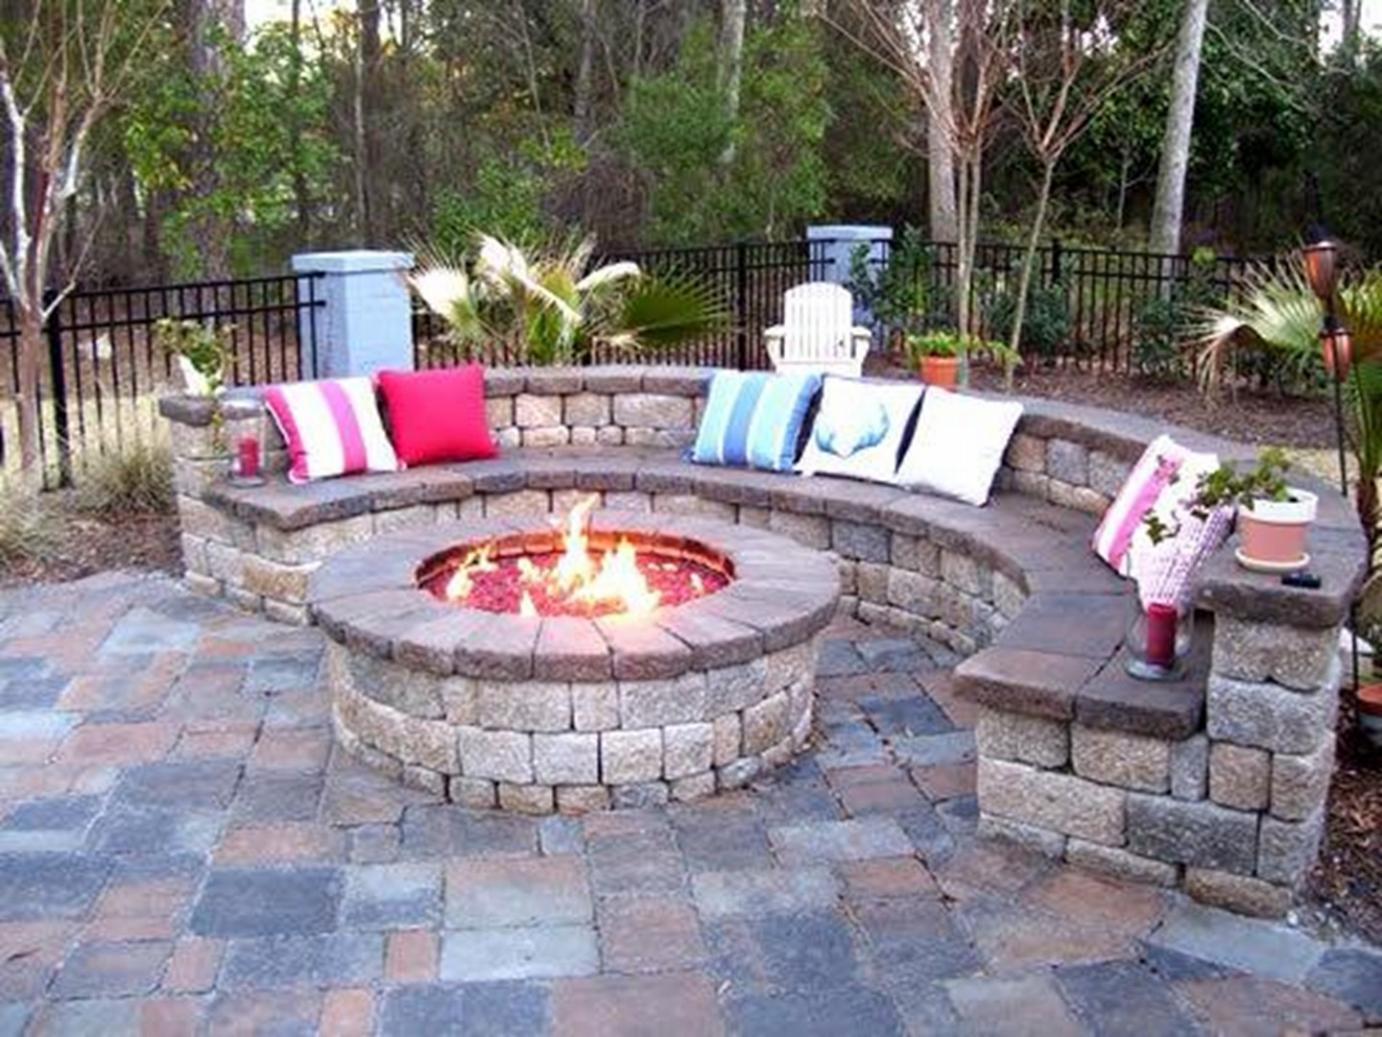 backyard fire pit design backyard fire pit ideas landscaping - Backyard Design Ideas